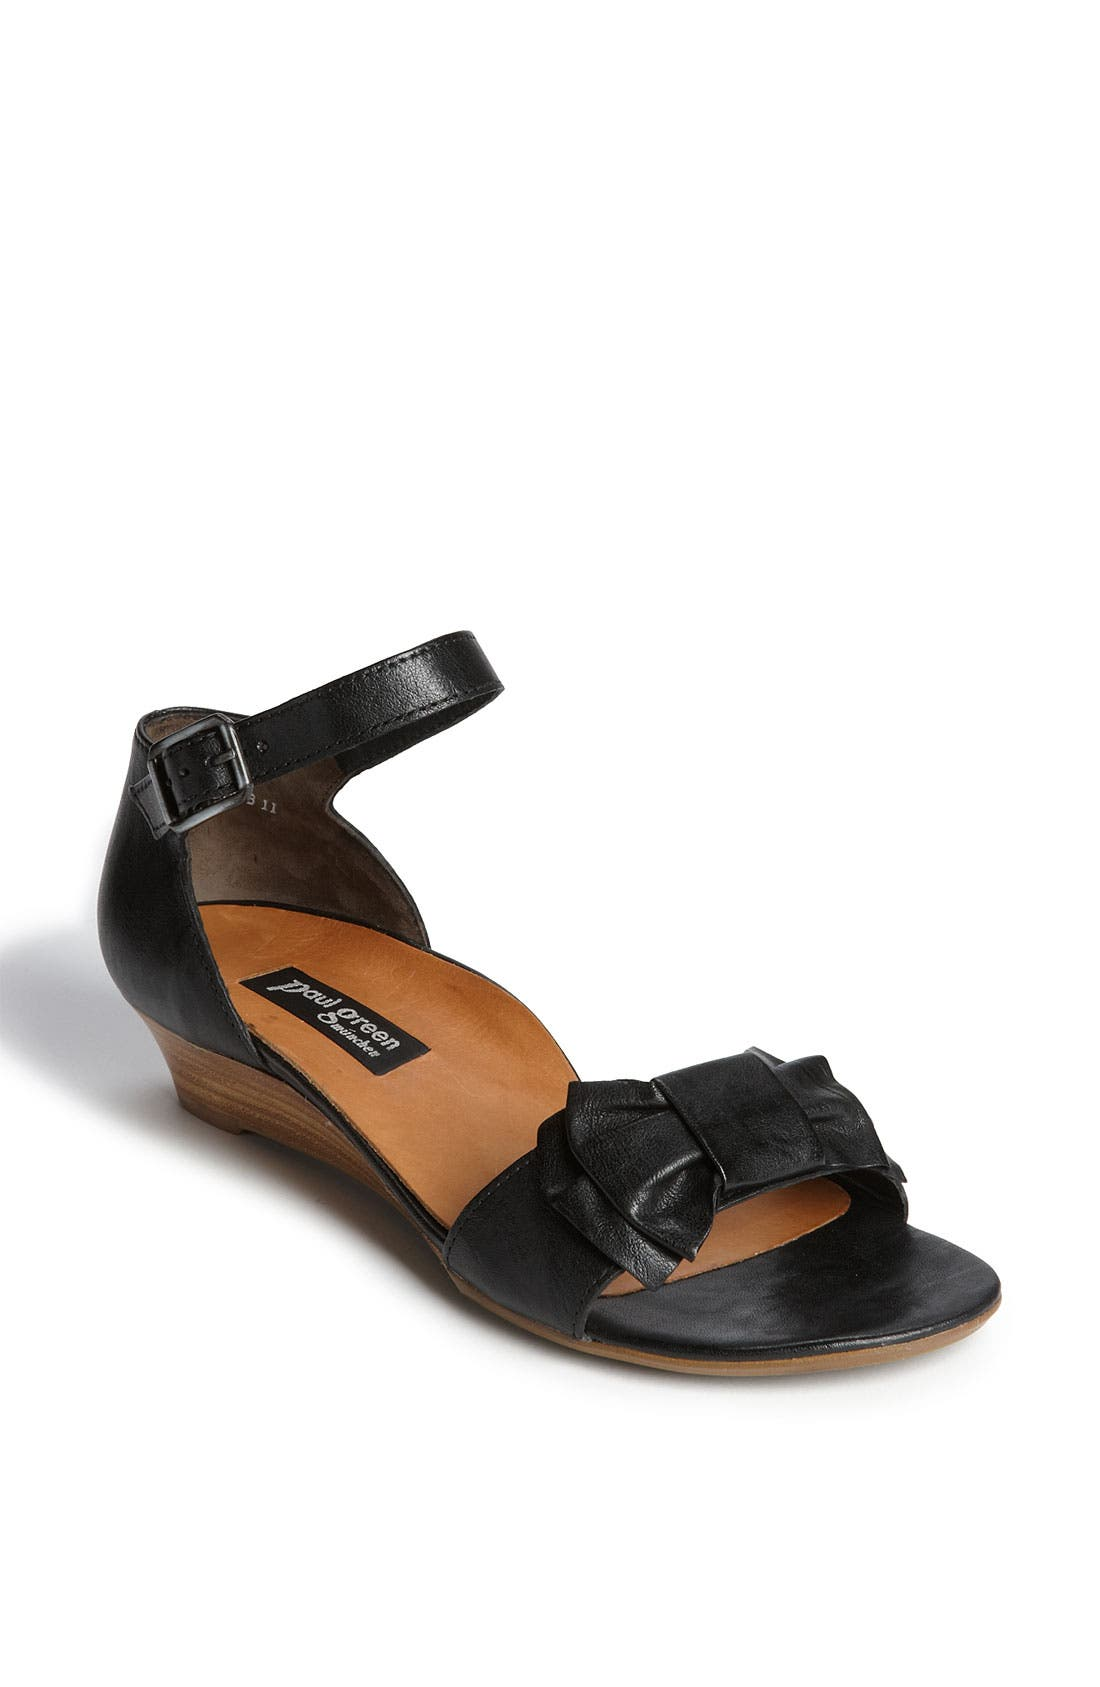 Alternate Image 1 Selected - Paul Green 'Lexi Bow' Sandal